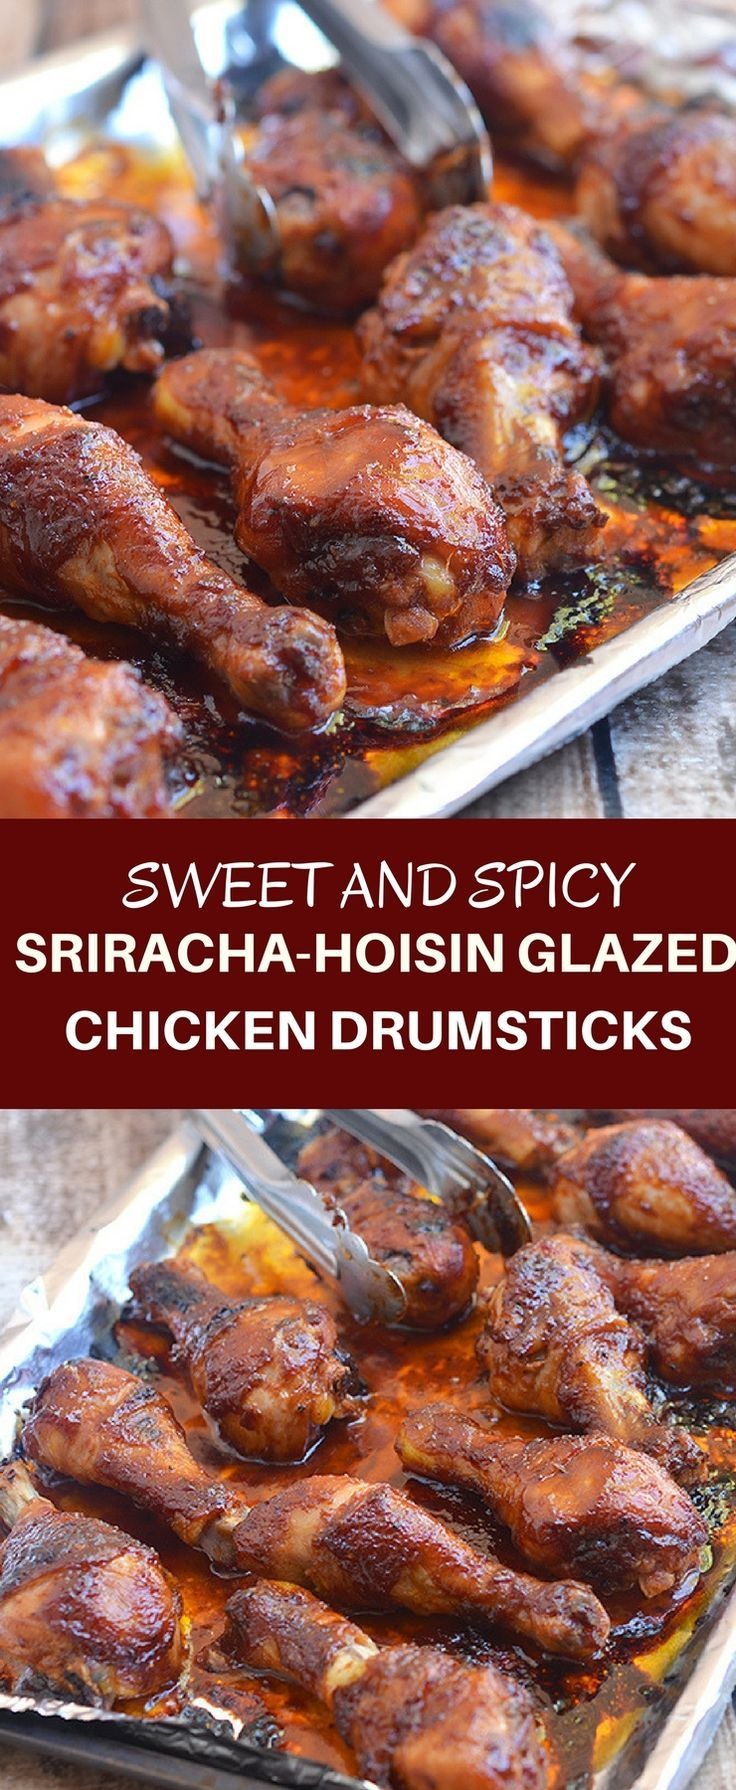 Sriracha-Hoisin Glazed Chicken Drumsticks are marinaded in a sweet, spicy Sriracha and hoisin glaze. They're easy to make for an amazing weeknight meal!